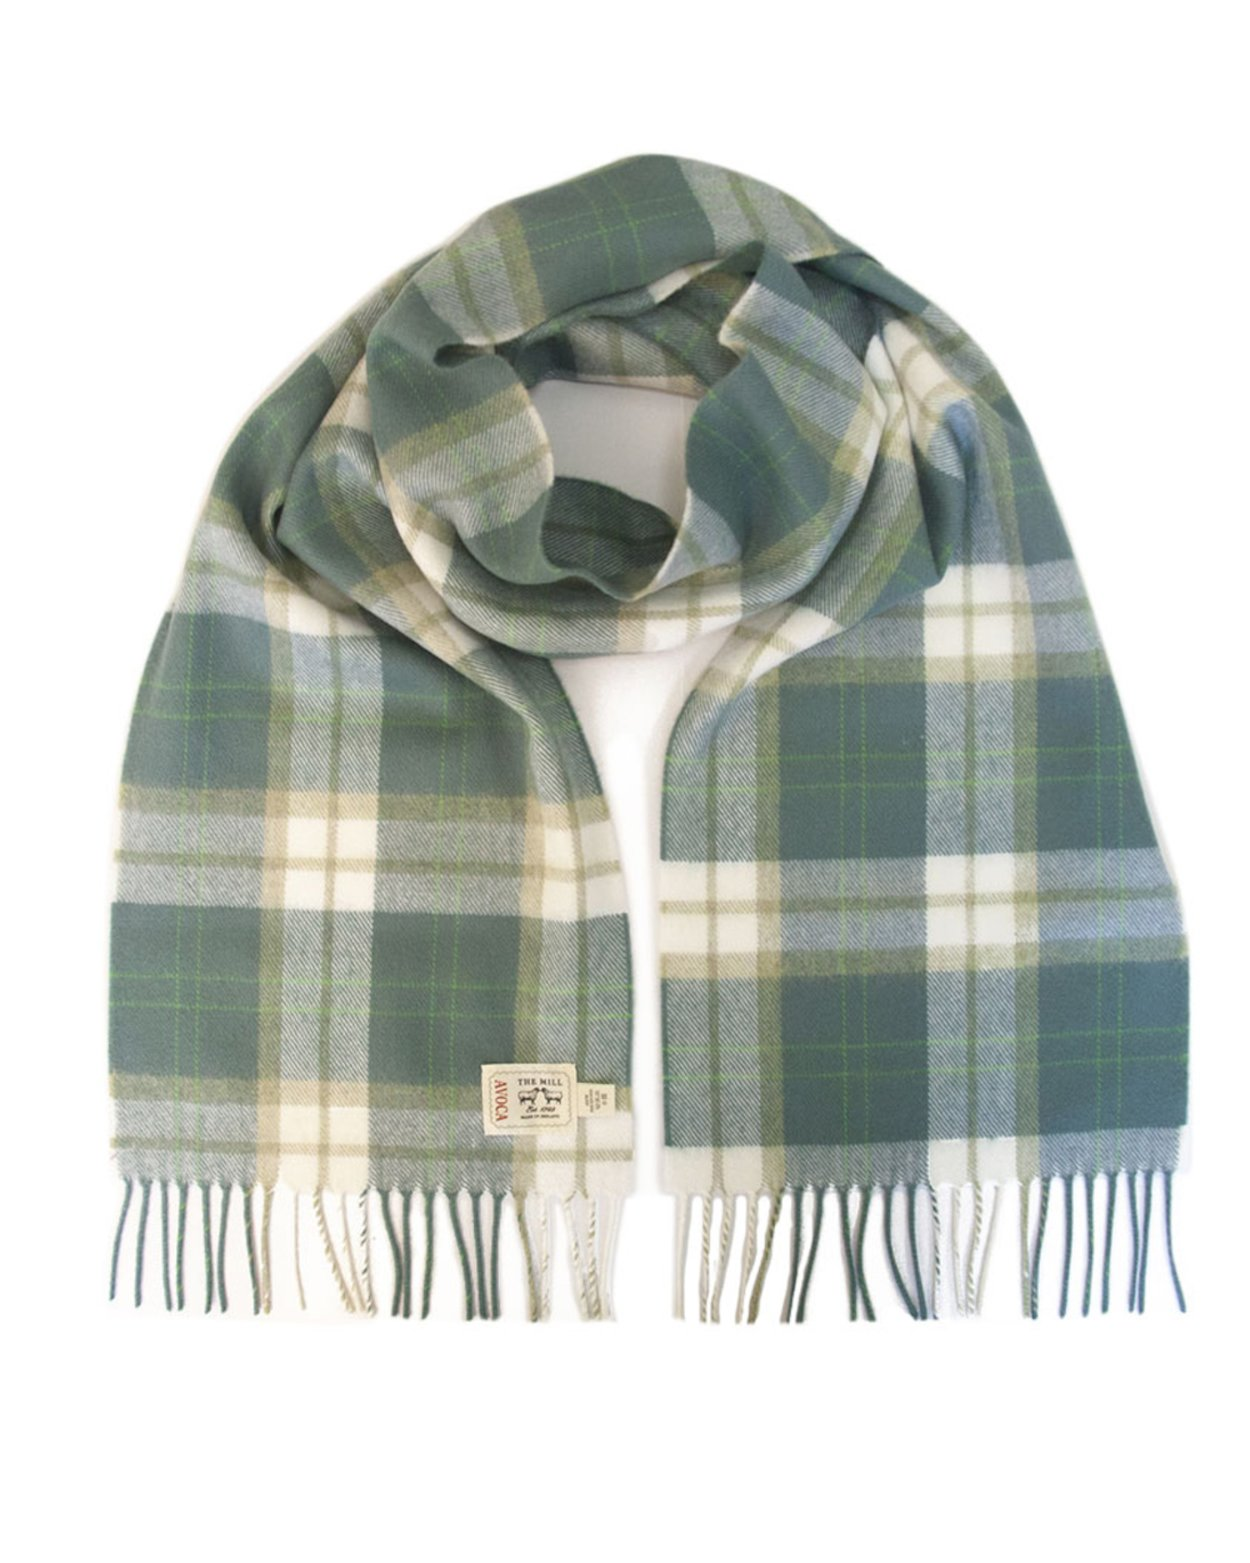 Avoca 100% Lambswool Scarf (Made in Ireland) Green Check design